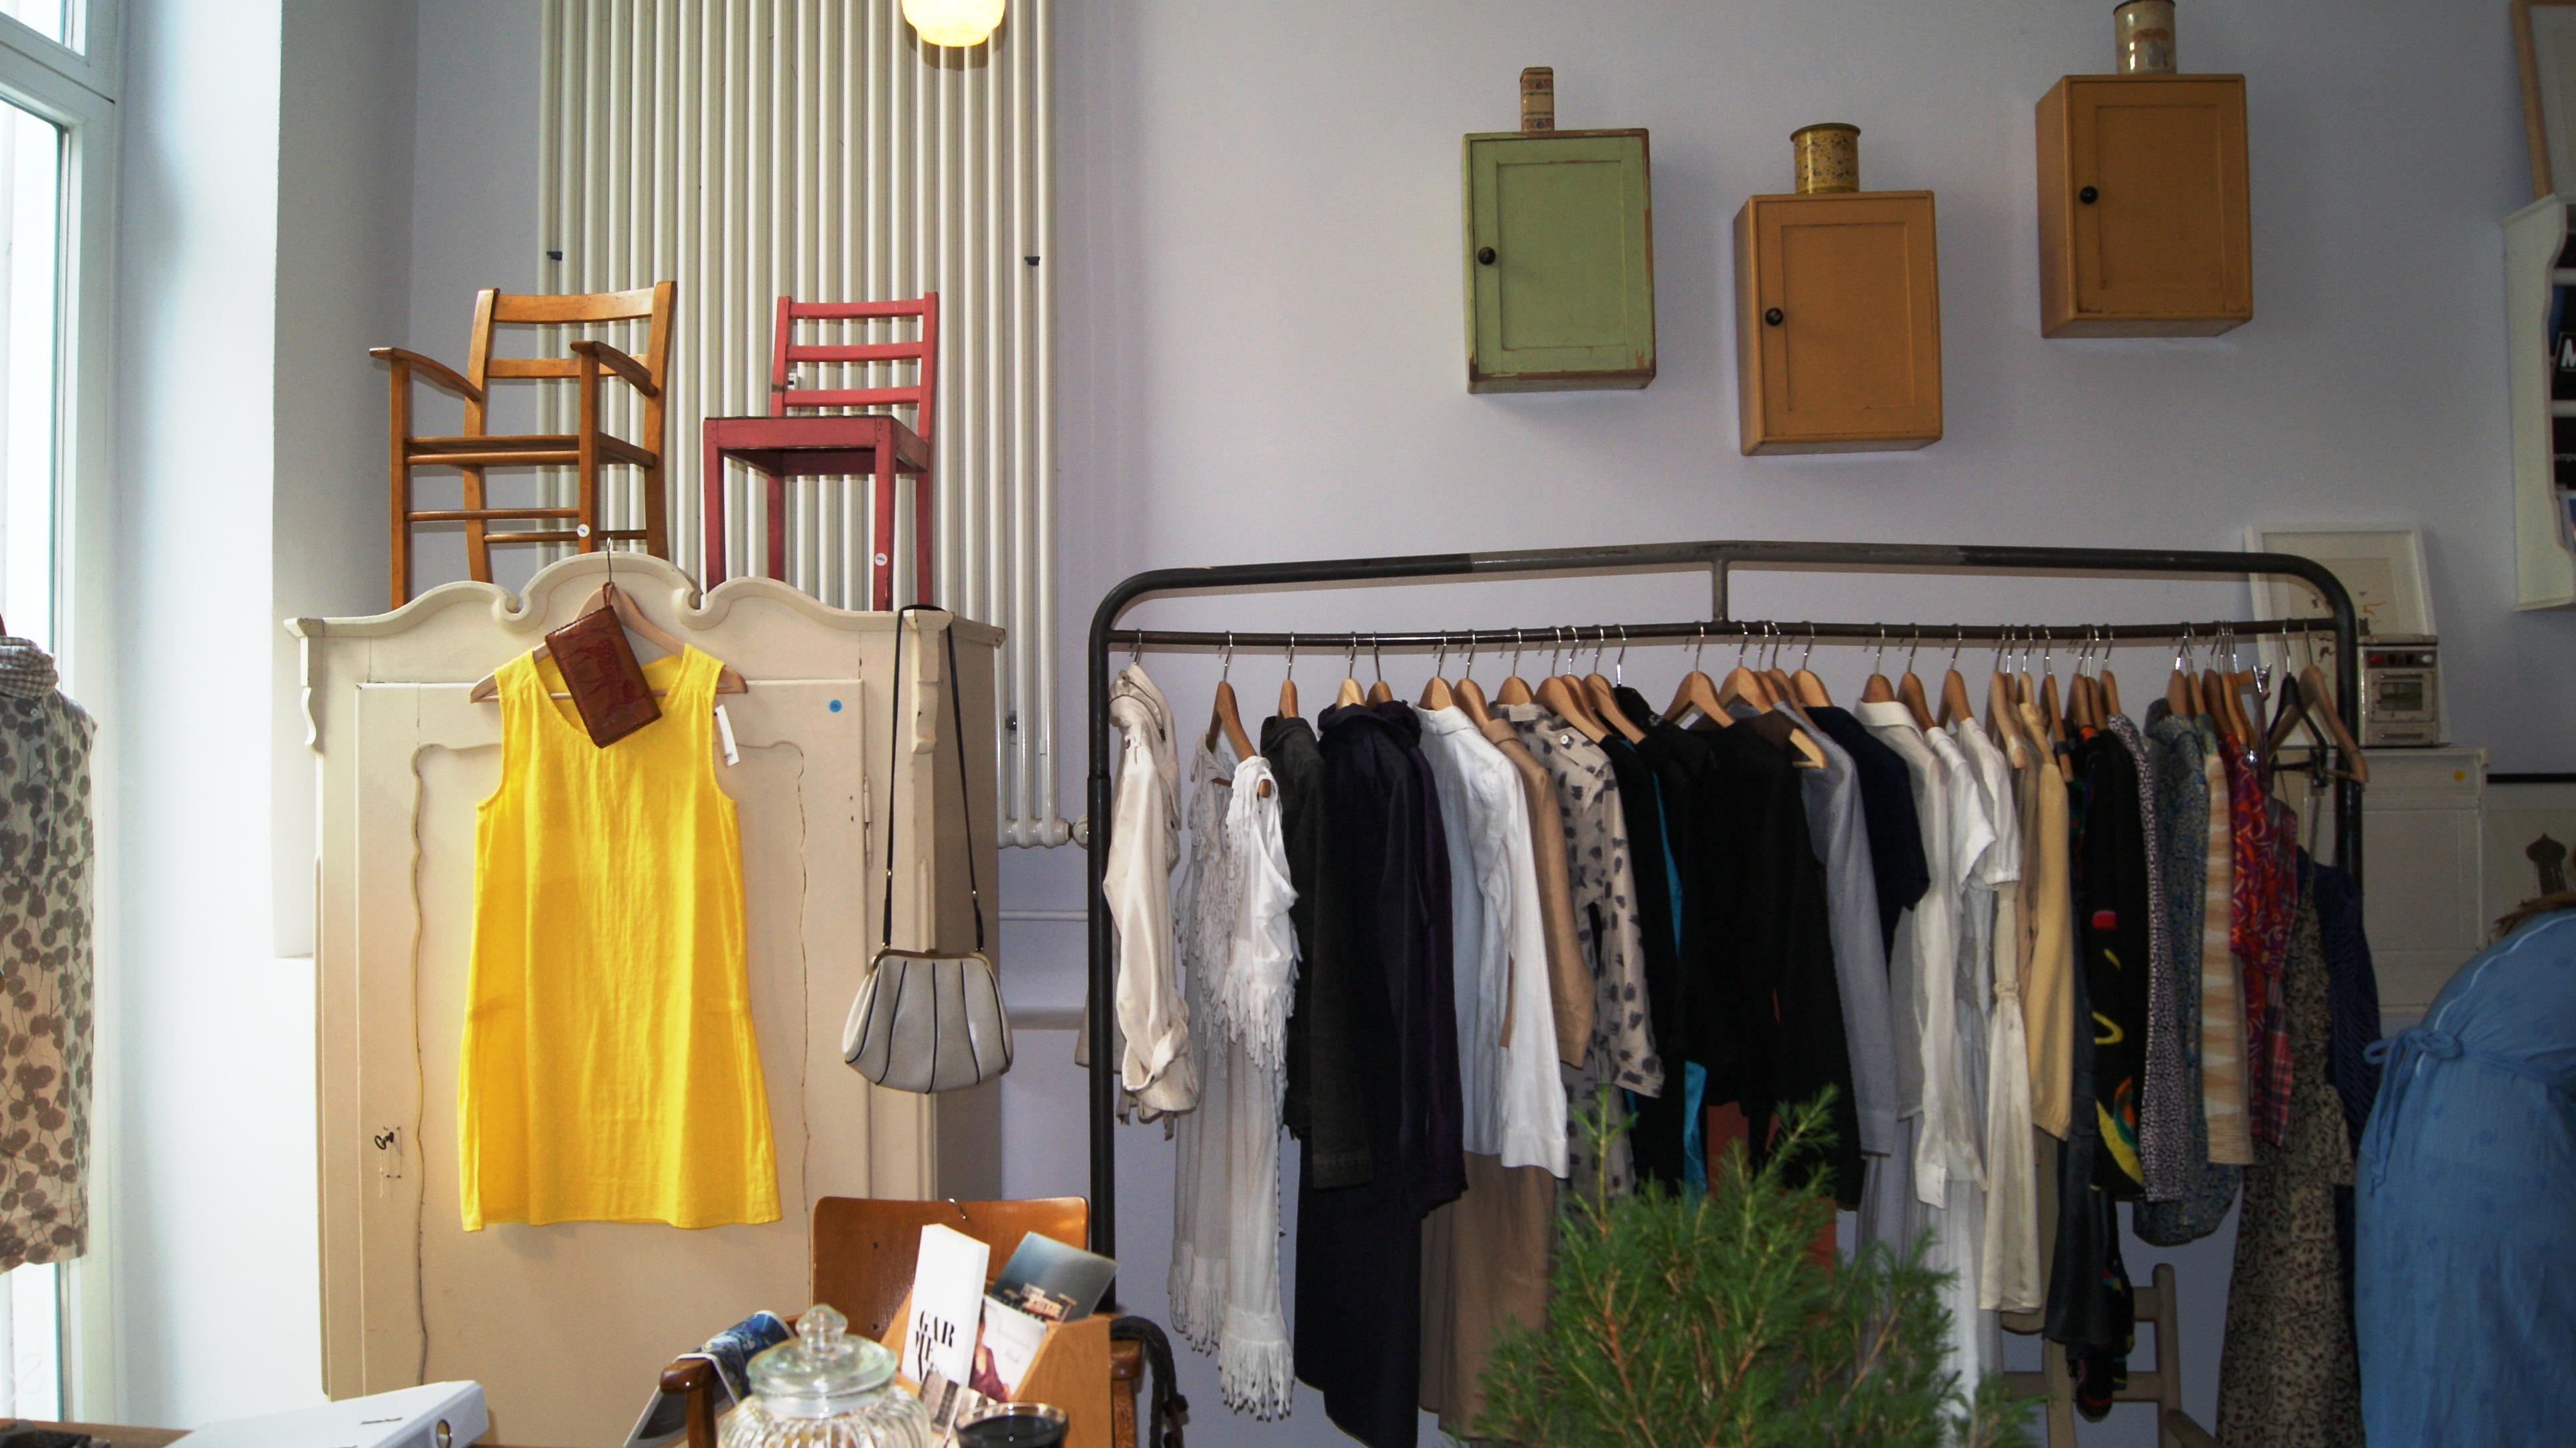 Top10 Liste: Second Hand Shops  top10berlin